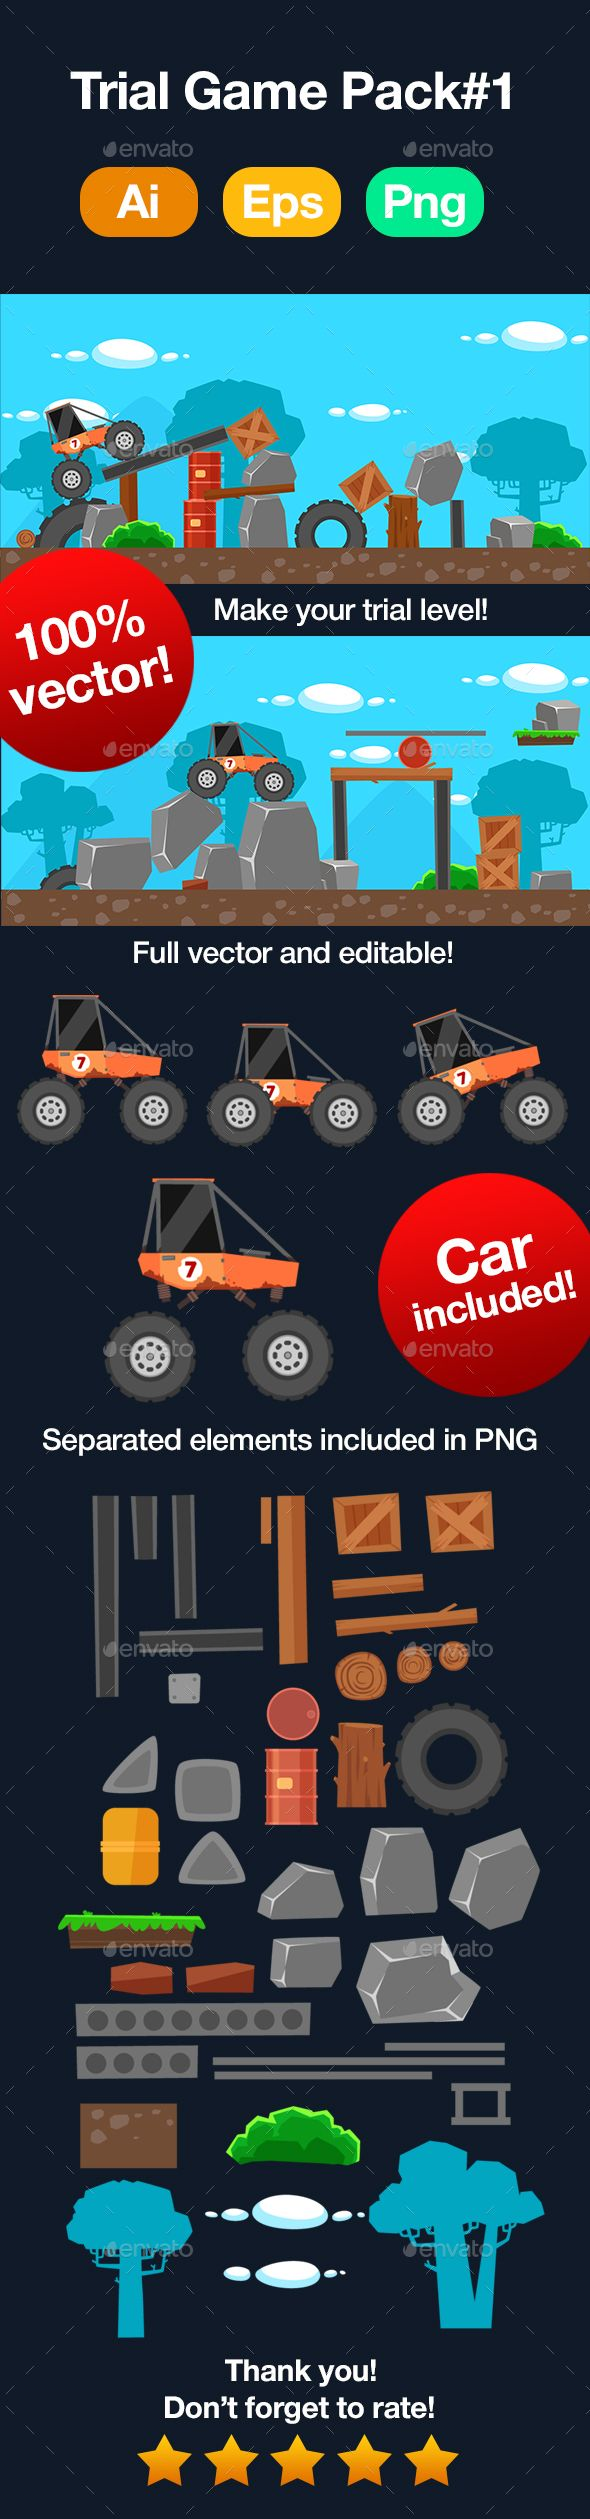 Trial Car Game Pack #1 | DOWNLOAD: https://graphicriver.net/item/trial-car-game-pack-1/20060508?ref=sinzo #Game #Kits Game #Assets